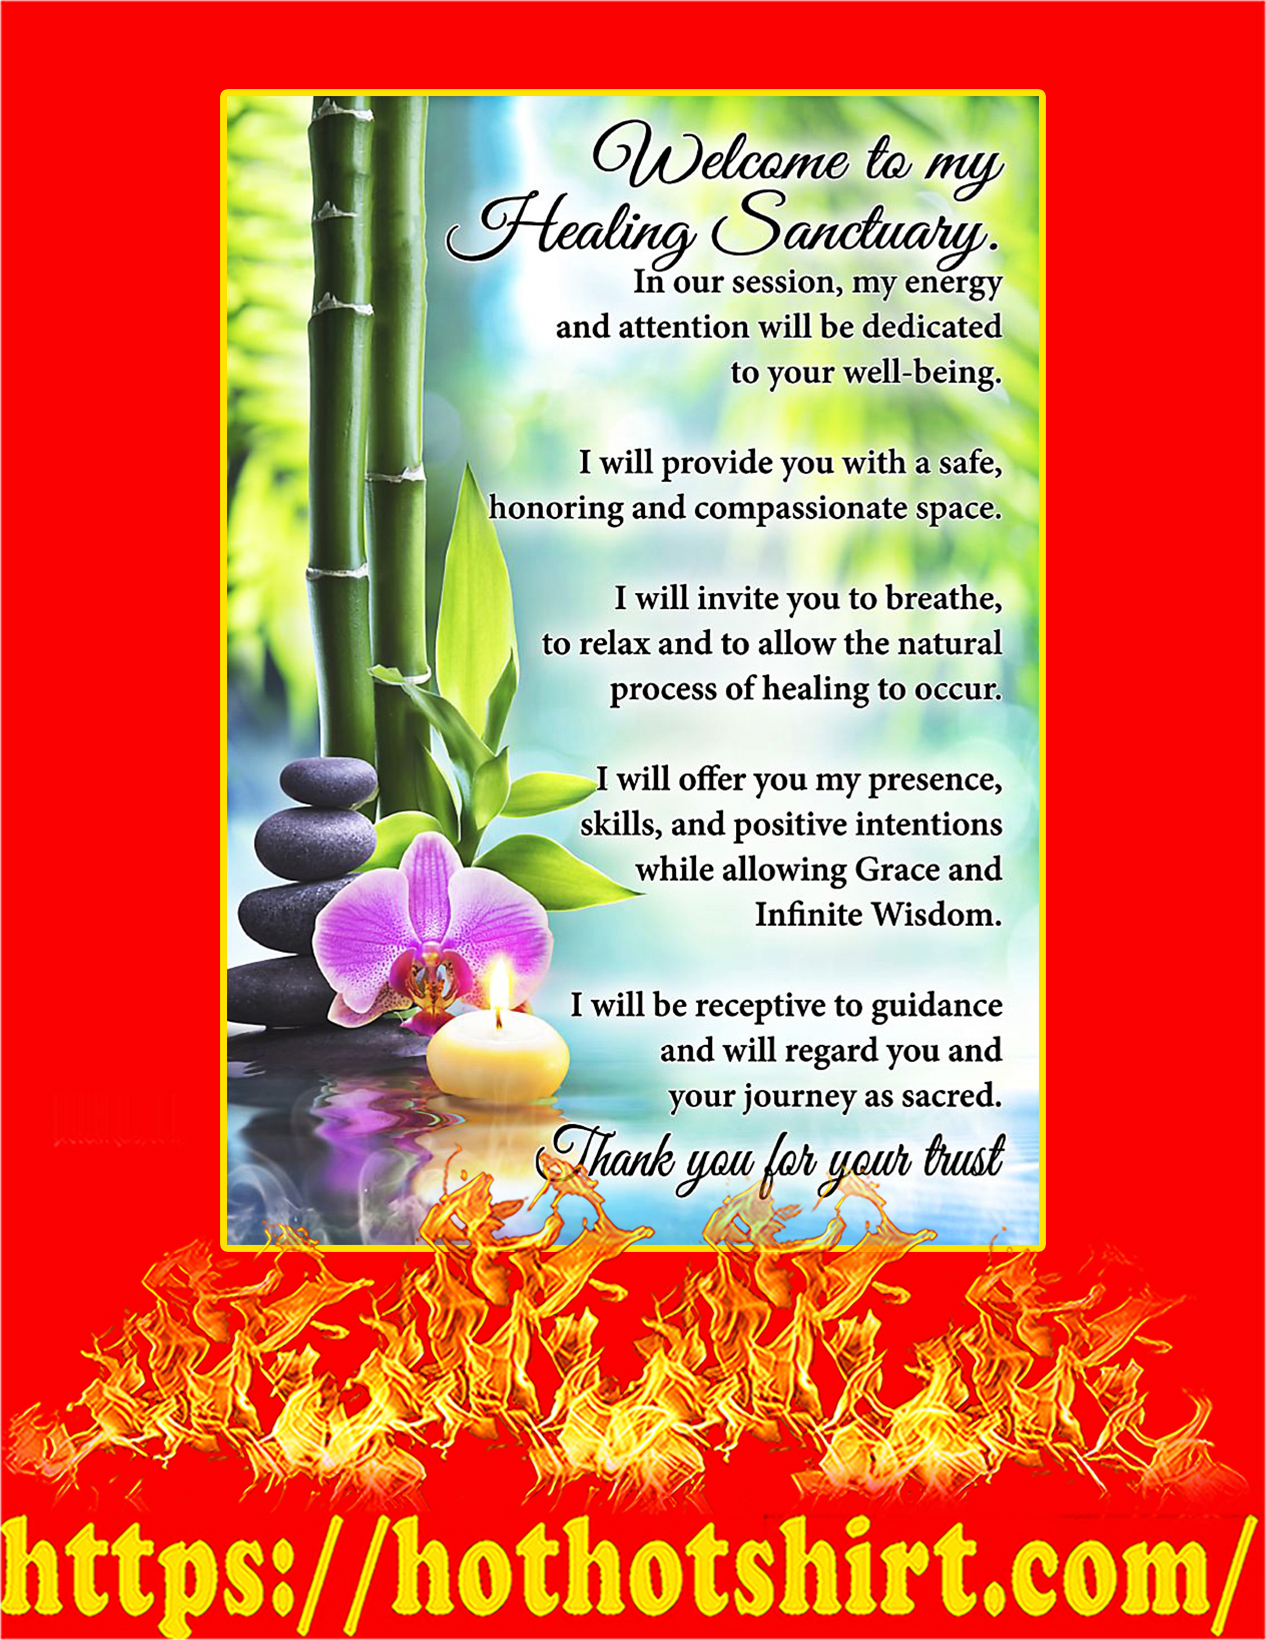 Massage therapist Welcome to my healing sanctuary poster